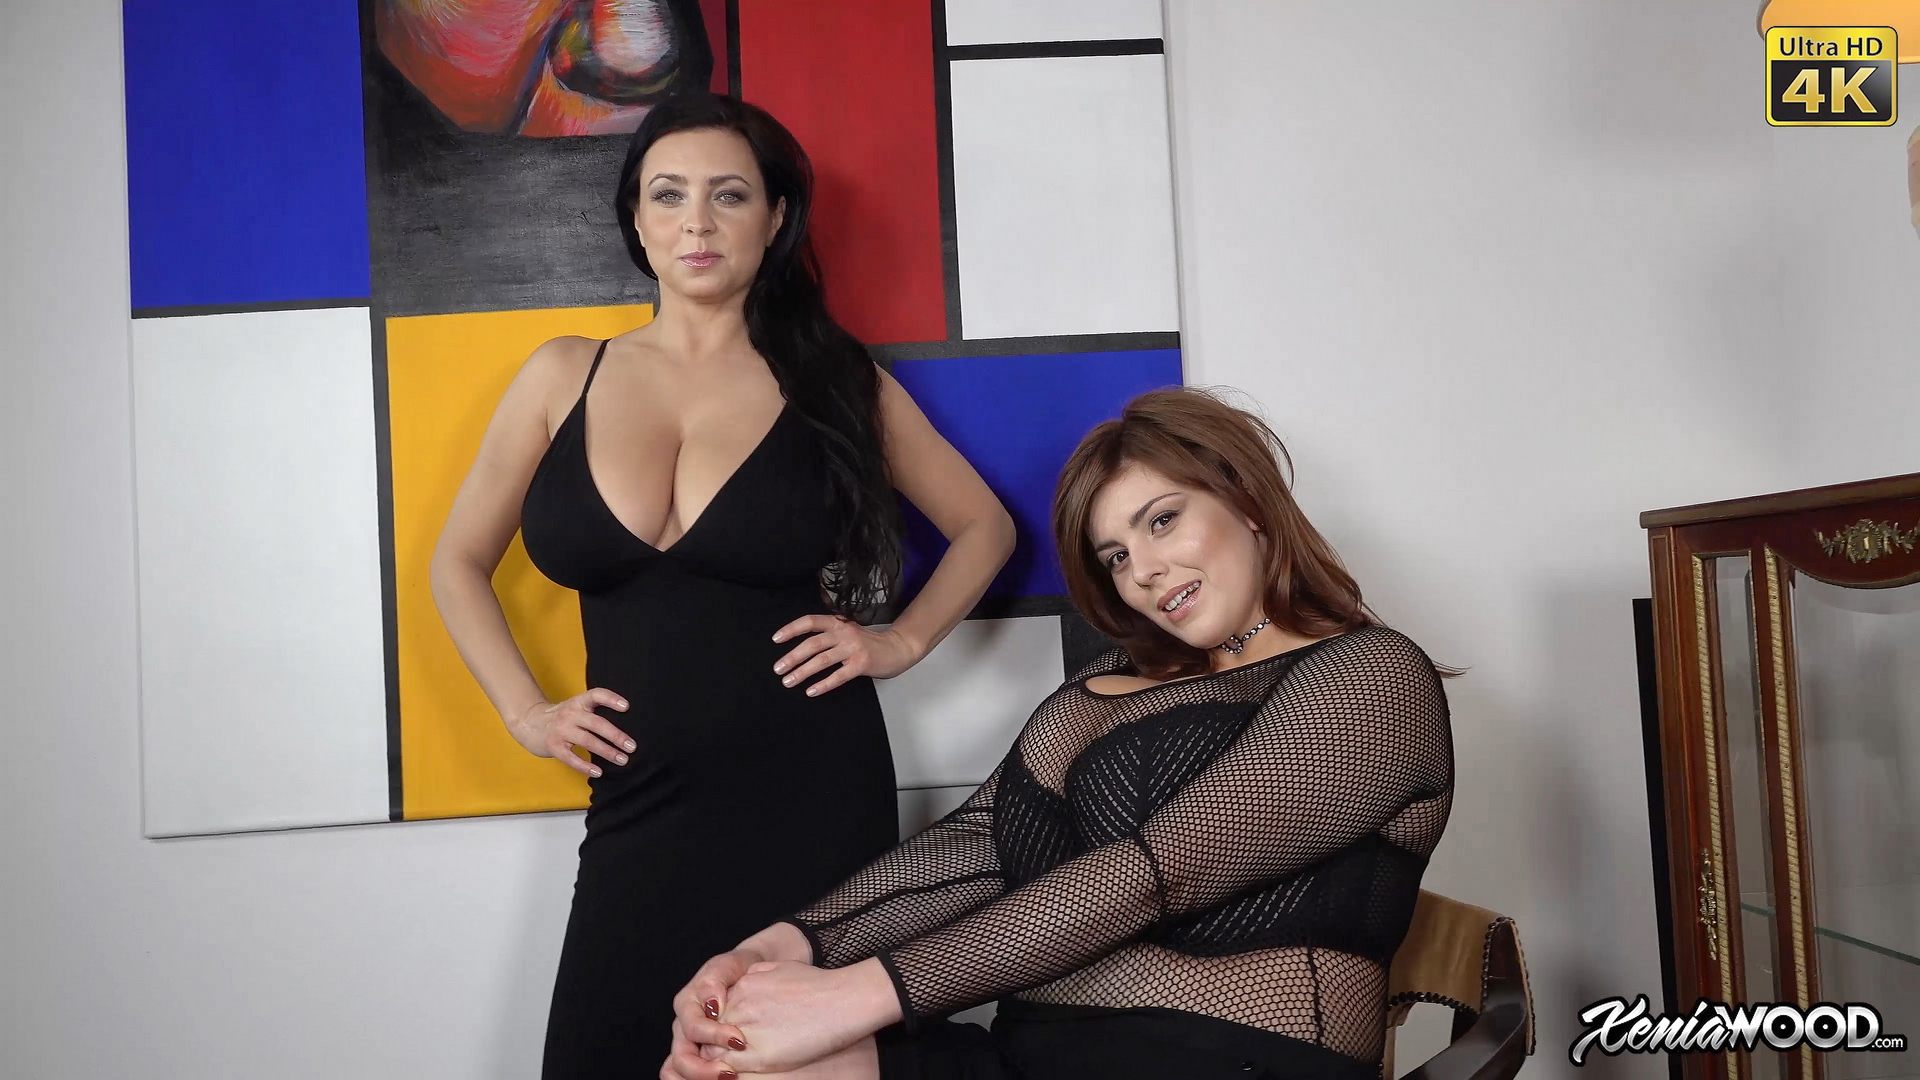 Ewa Sonnet and Xenia Wood create Huge Boob Topless Combination